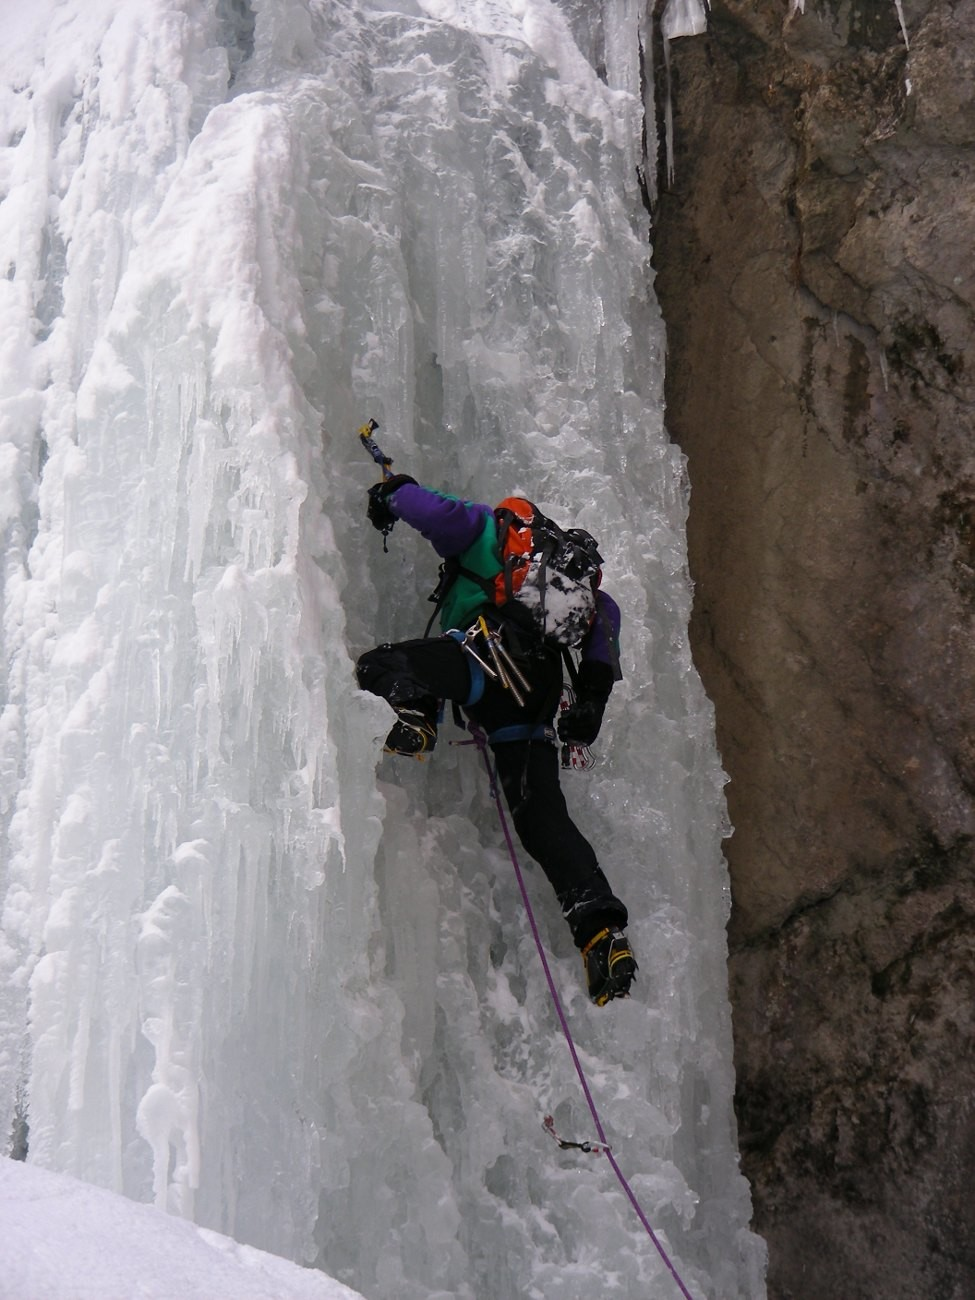 A climber on pitch 3 (the ice has been heavily battered)